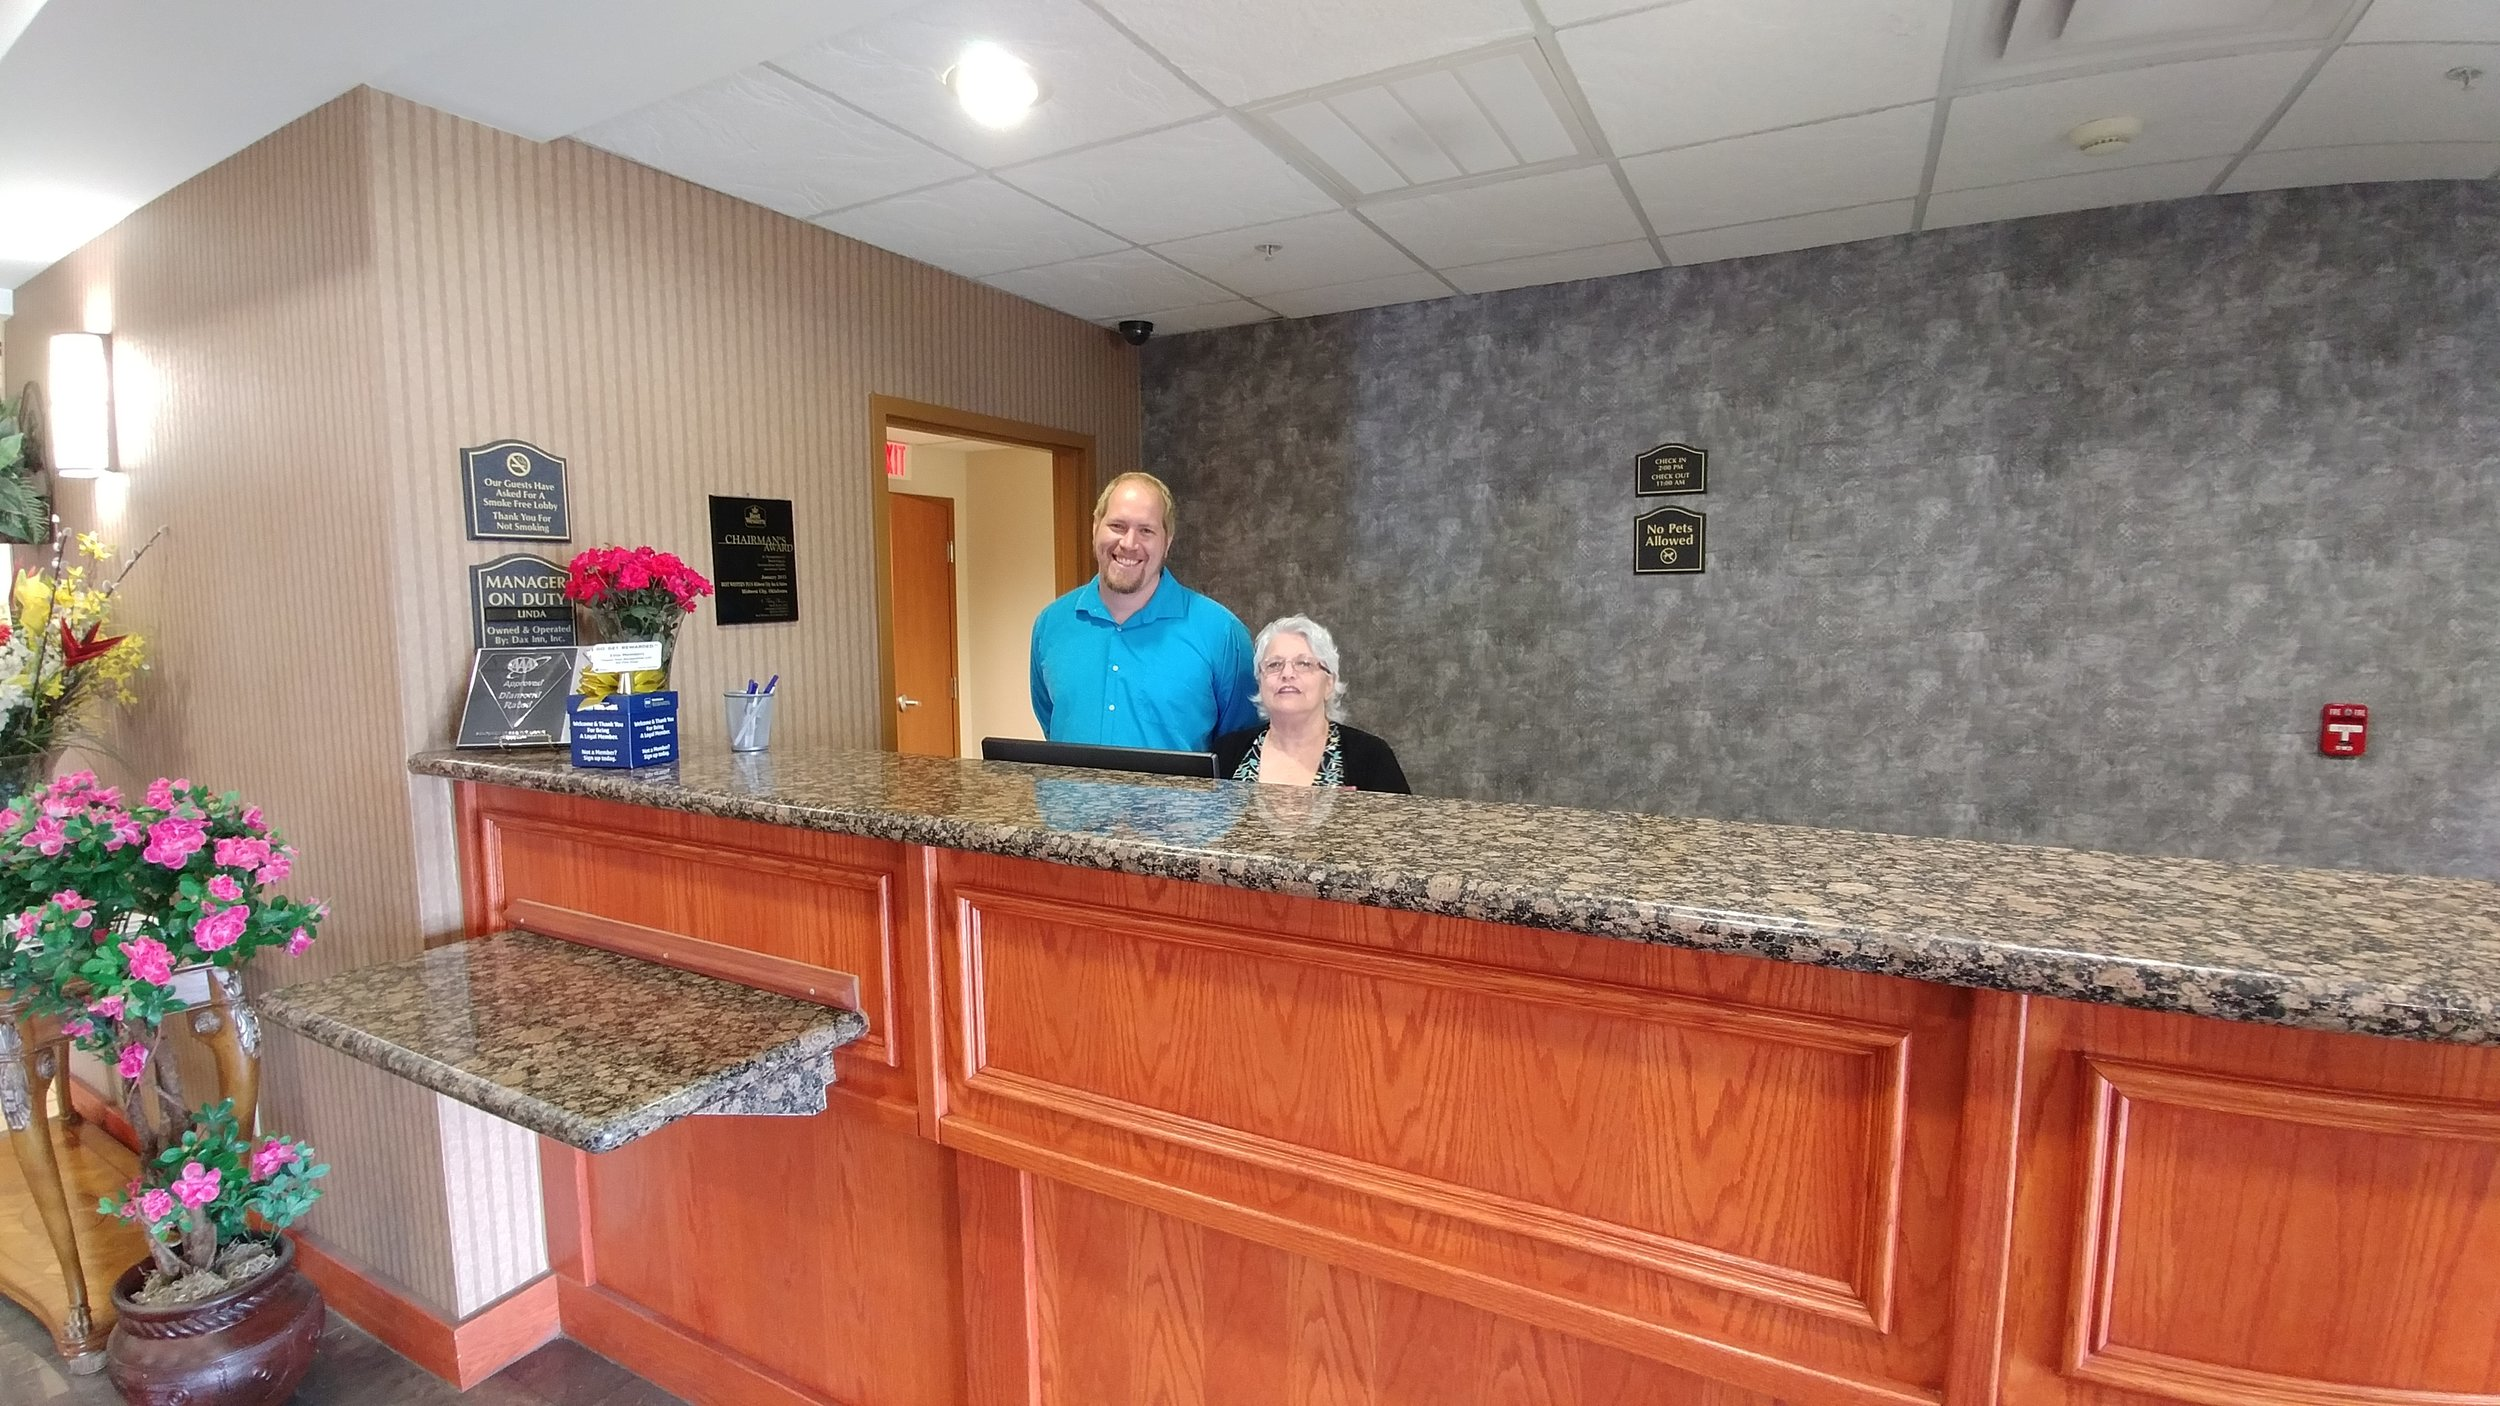 Linda and assistant manager Justin (Ken, general manager, not shown)